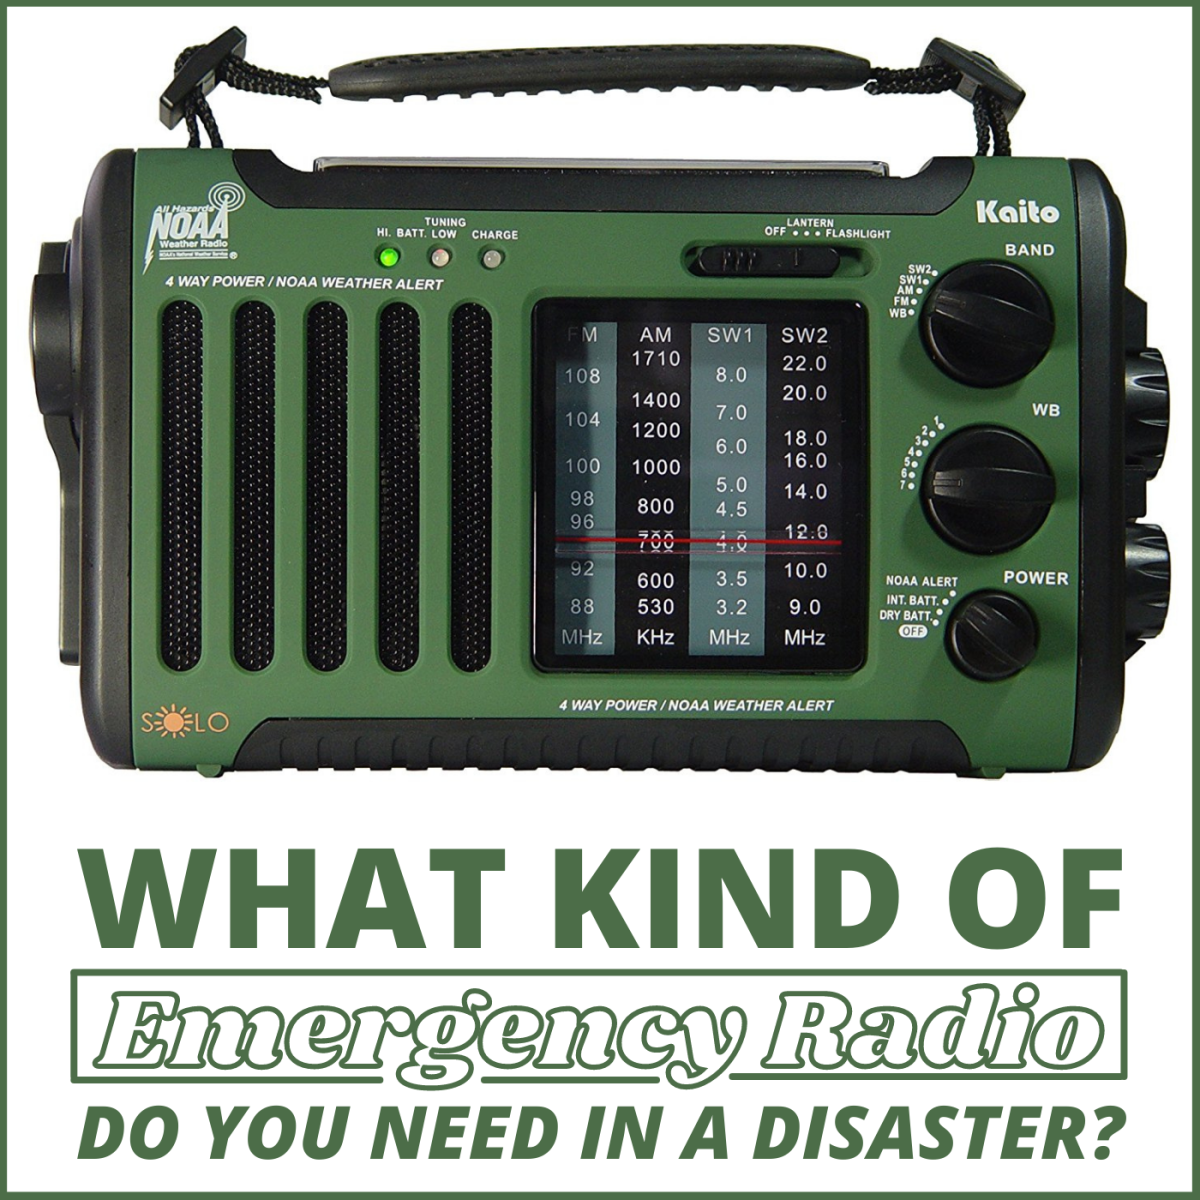 What Kind of Emergency Radio Do You Need in a Disaster?